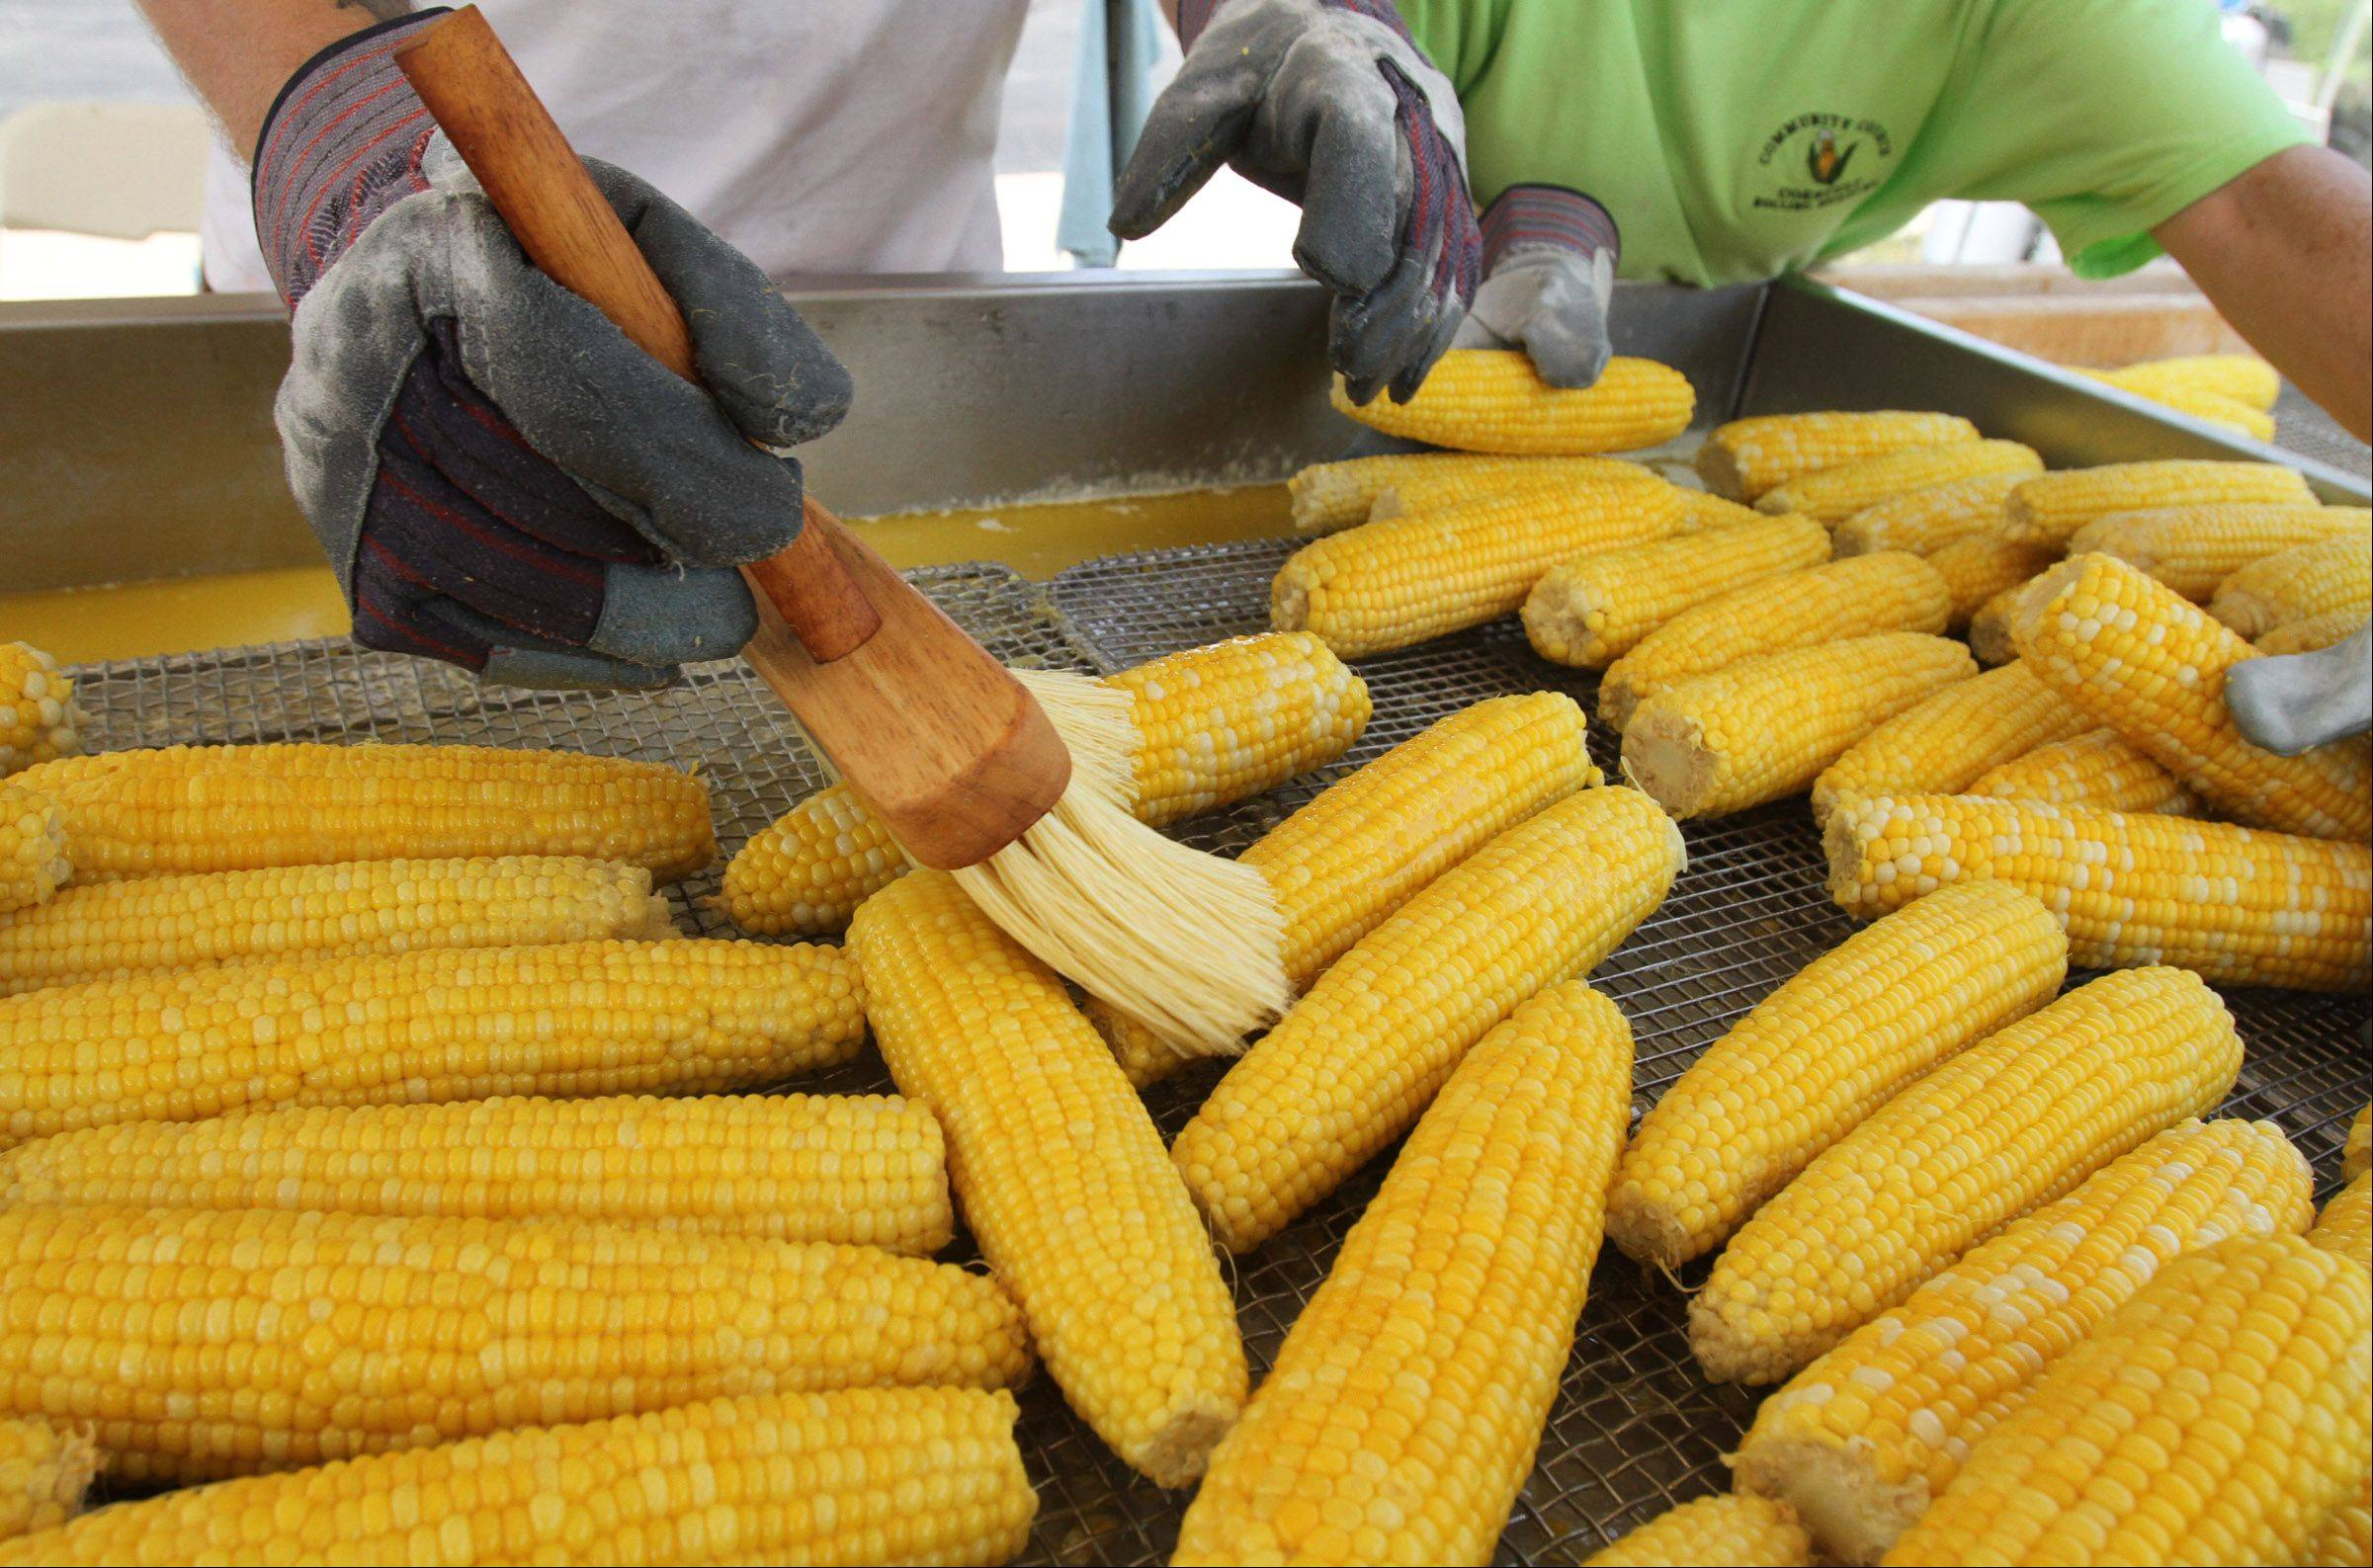 Randy's Vegetables in Sleepy Hollow will hold a corn roast fundraiser Sunday, Aug. 12, as a fundraiser for Illinois Special Olympics.